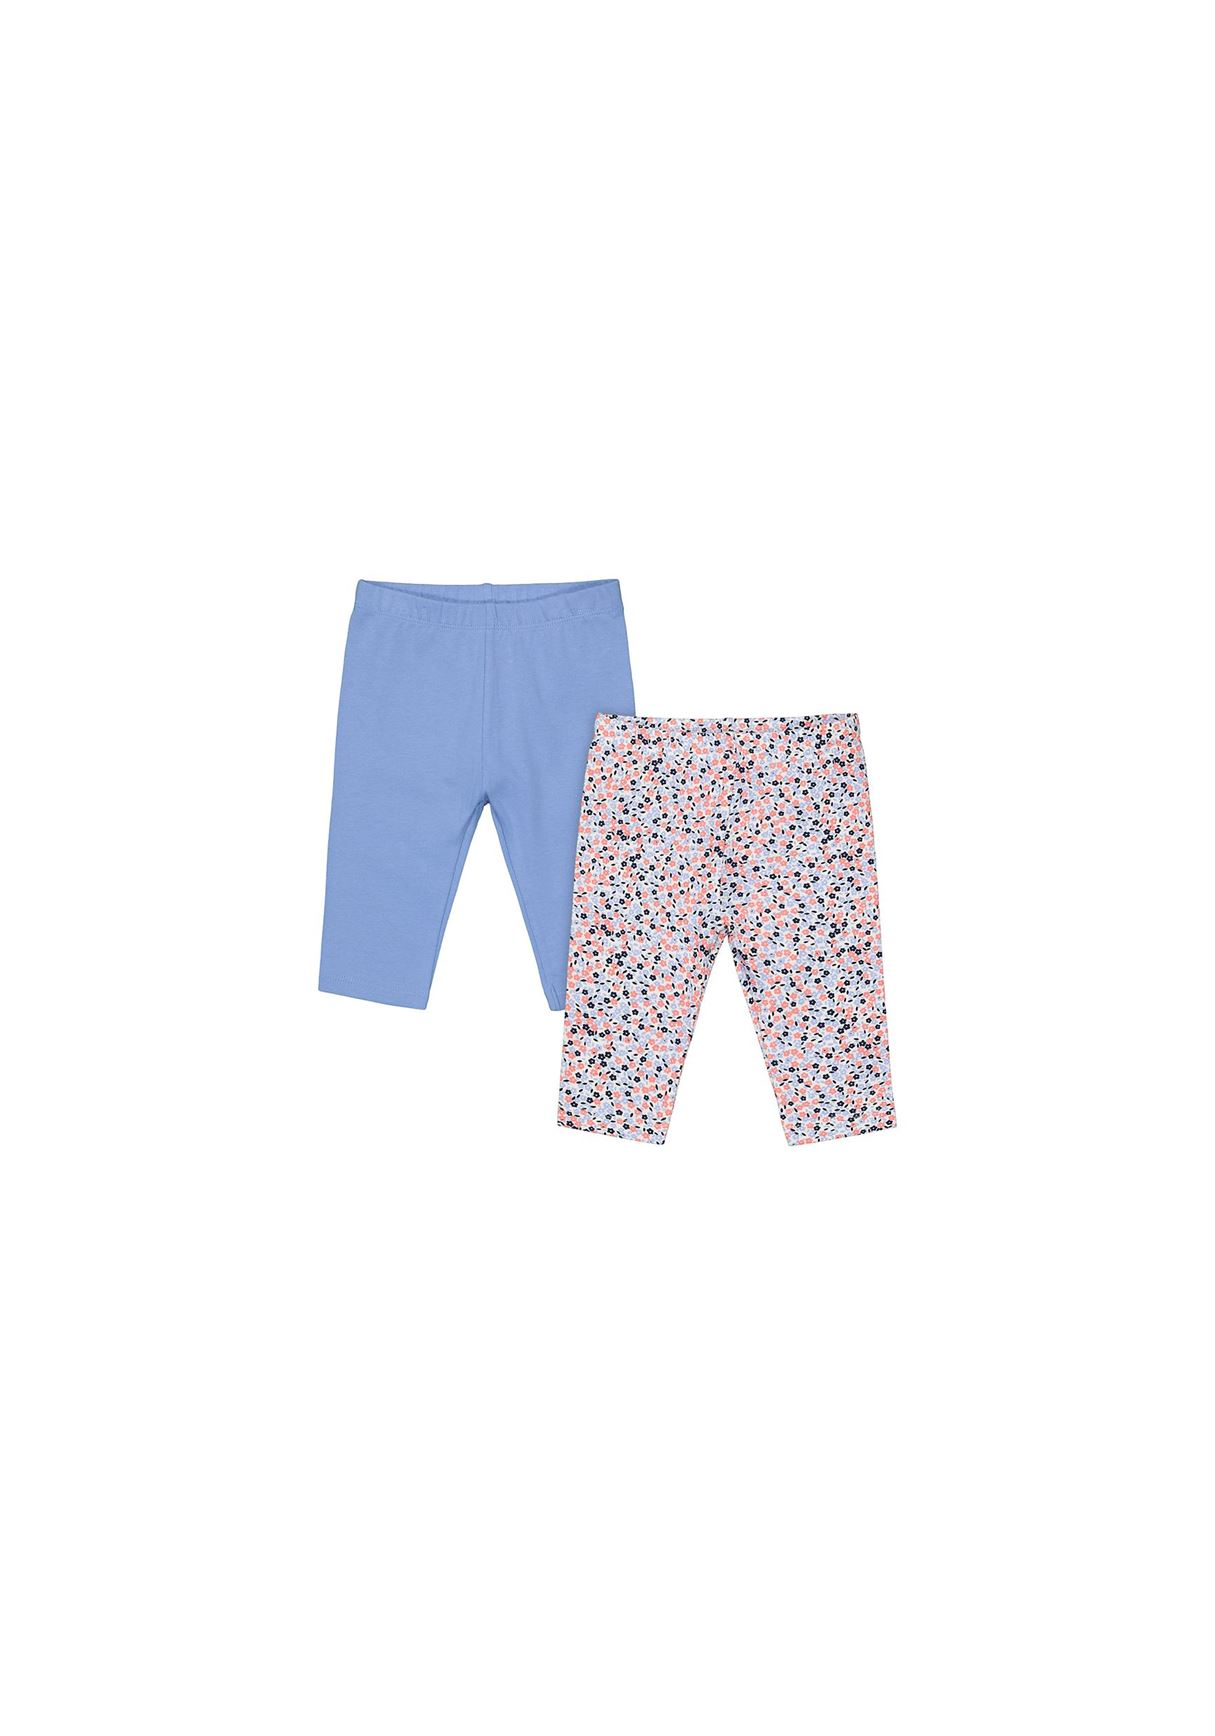 Mothercare Unisex Assorted Printed Pack of 2 Leggings